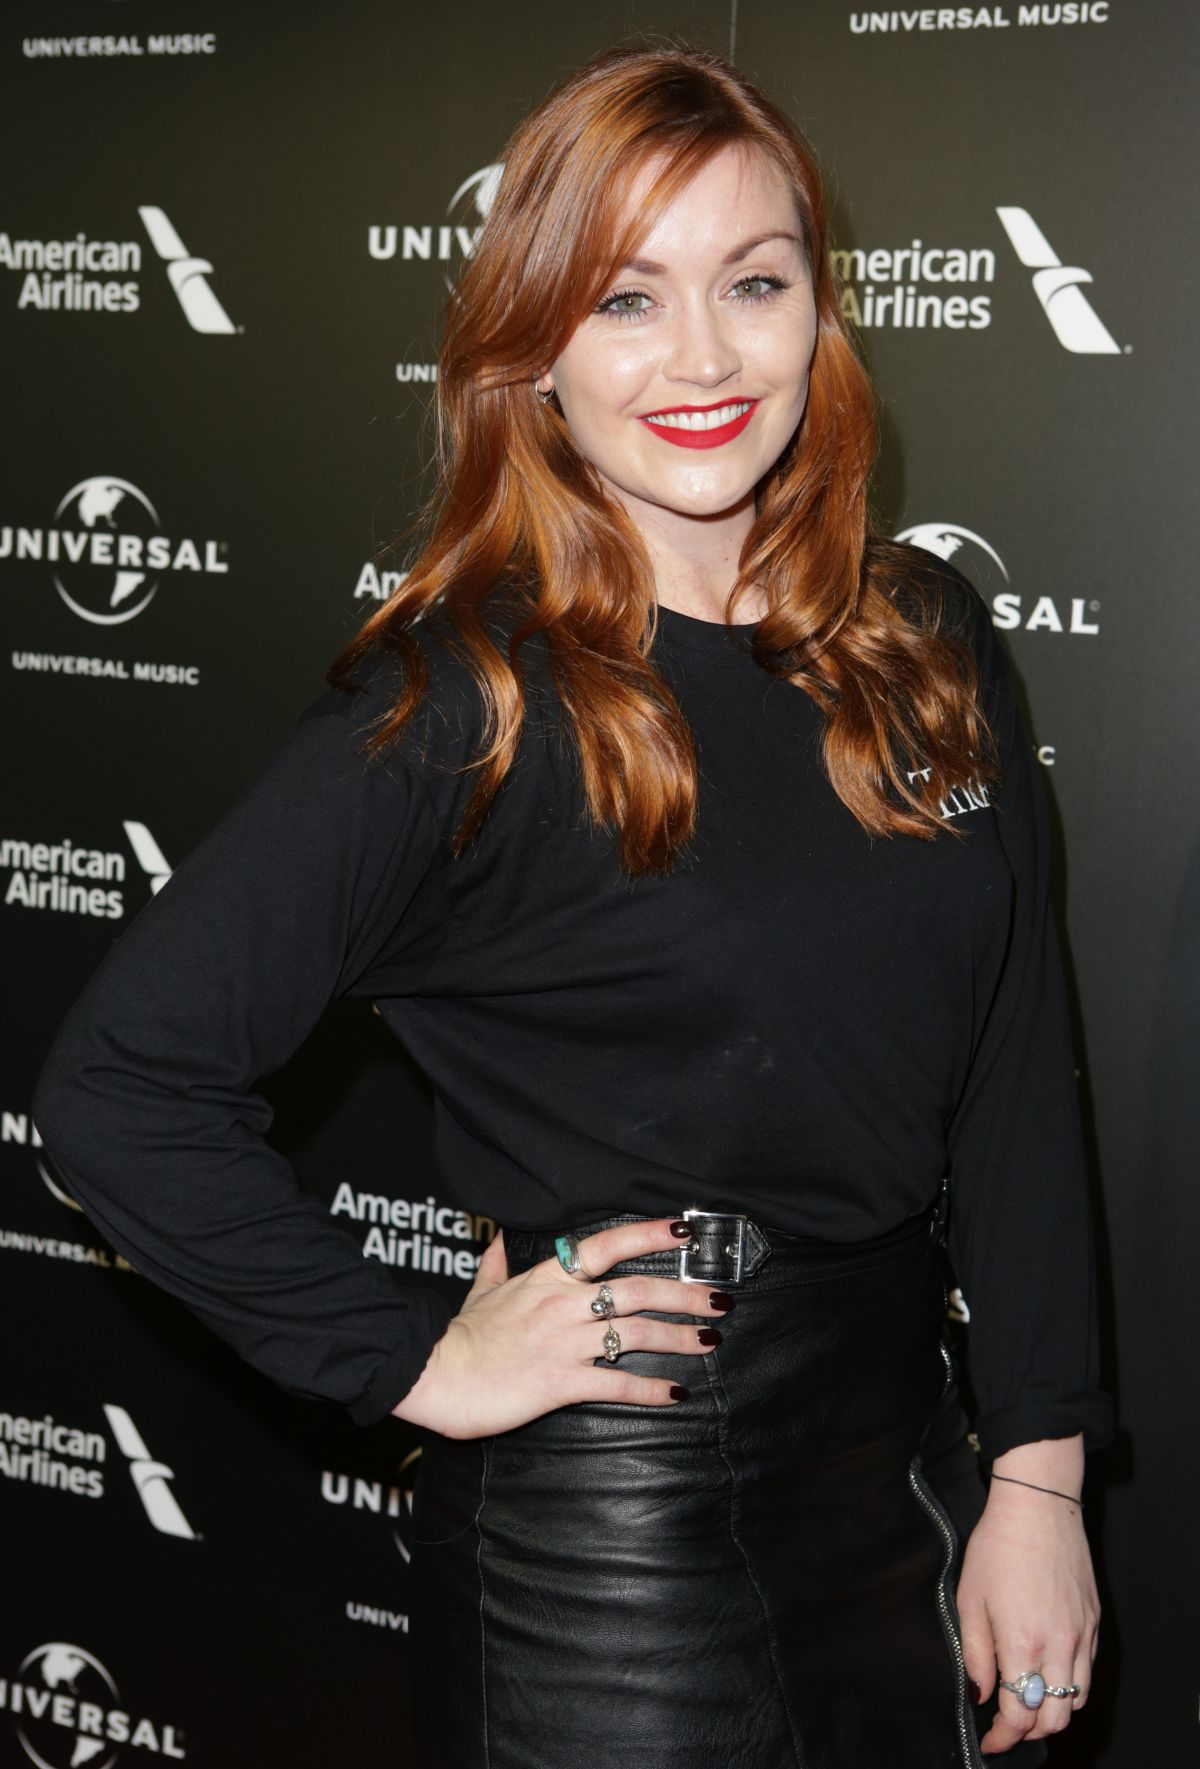 ARIELLE FREE at Universal Music Pre-brit Award Party in London 02/20/